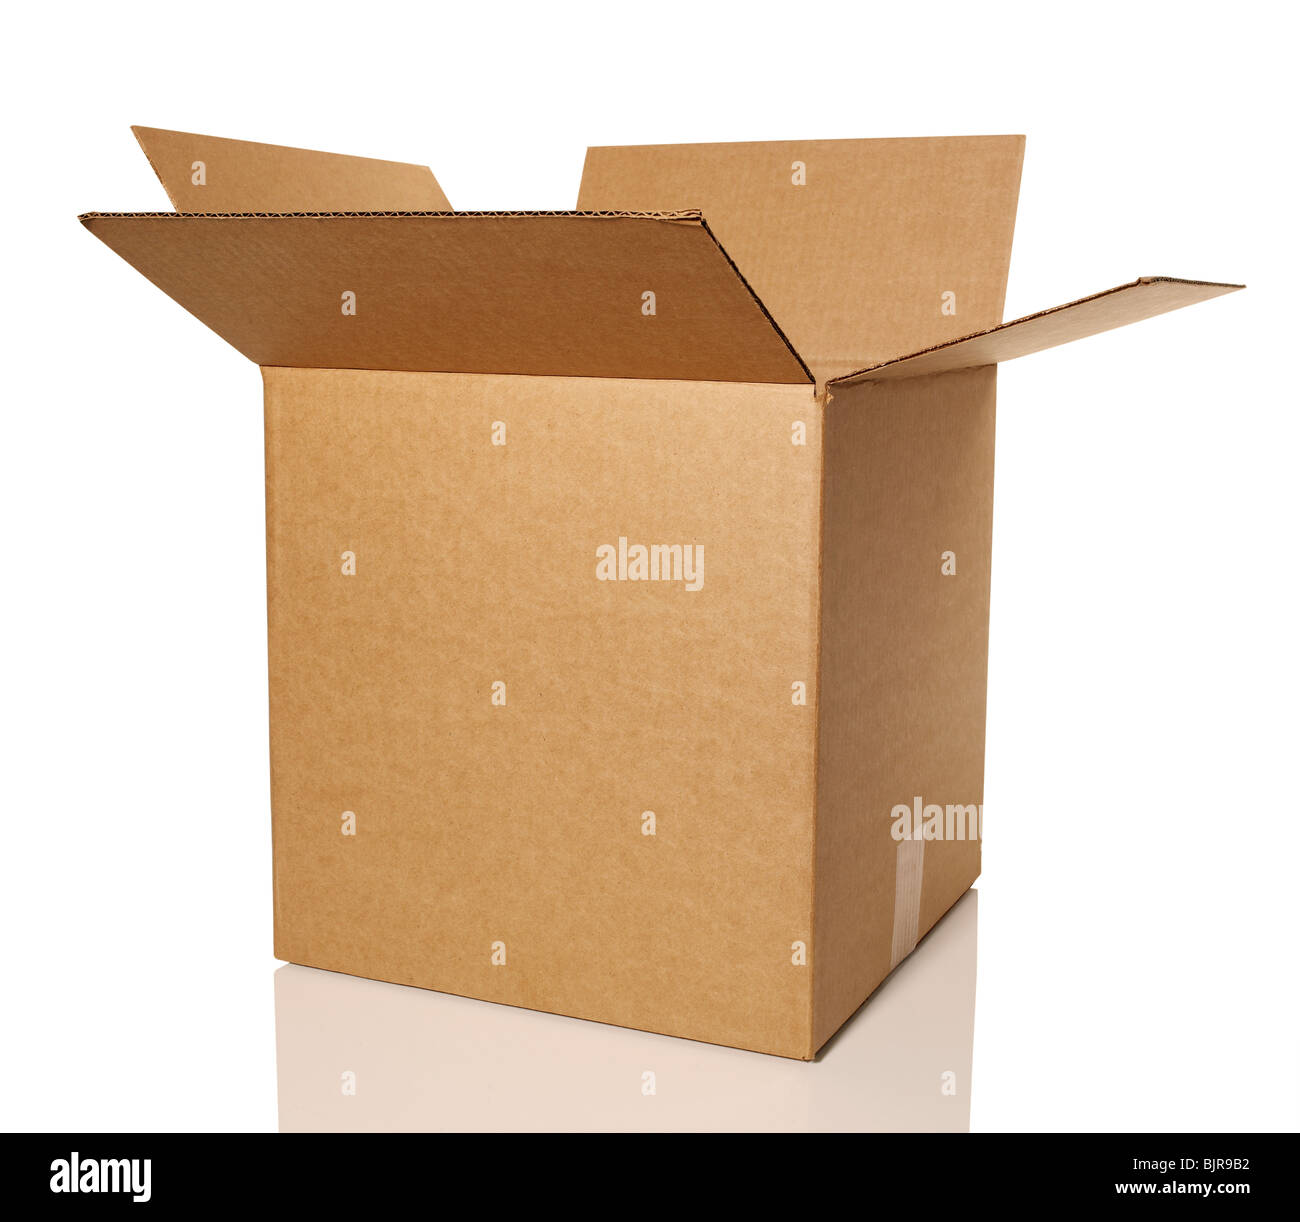 Brown cardboard container box - Stock Image